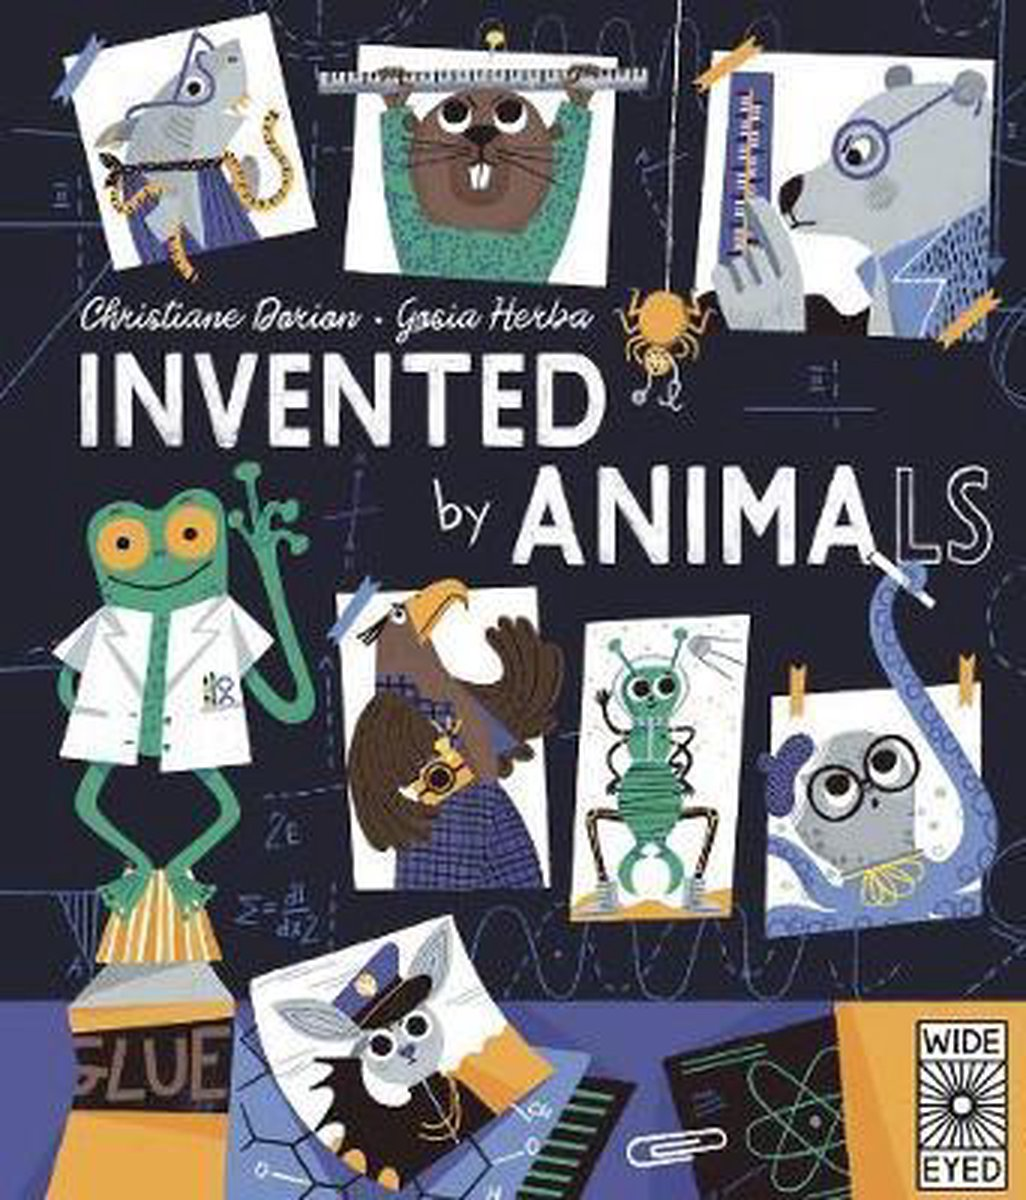 Invented by Animals